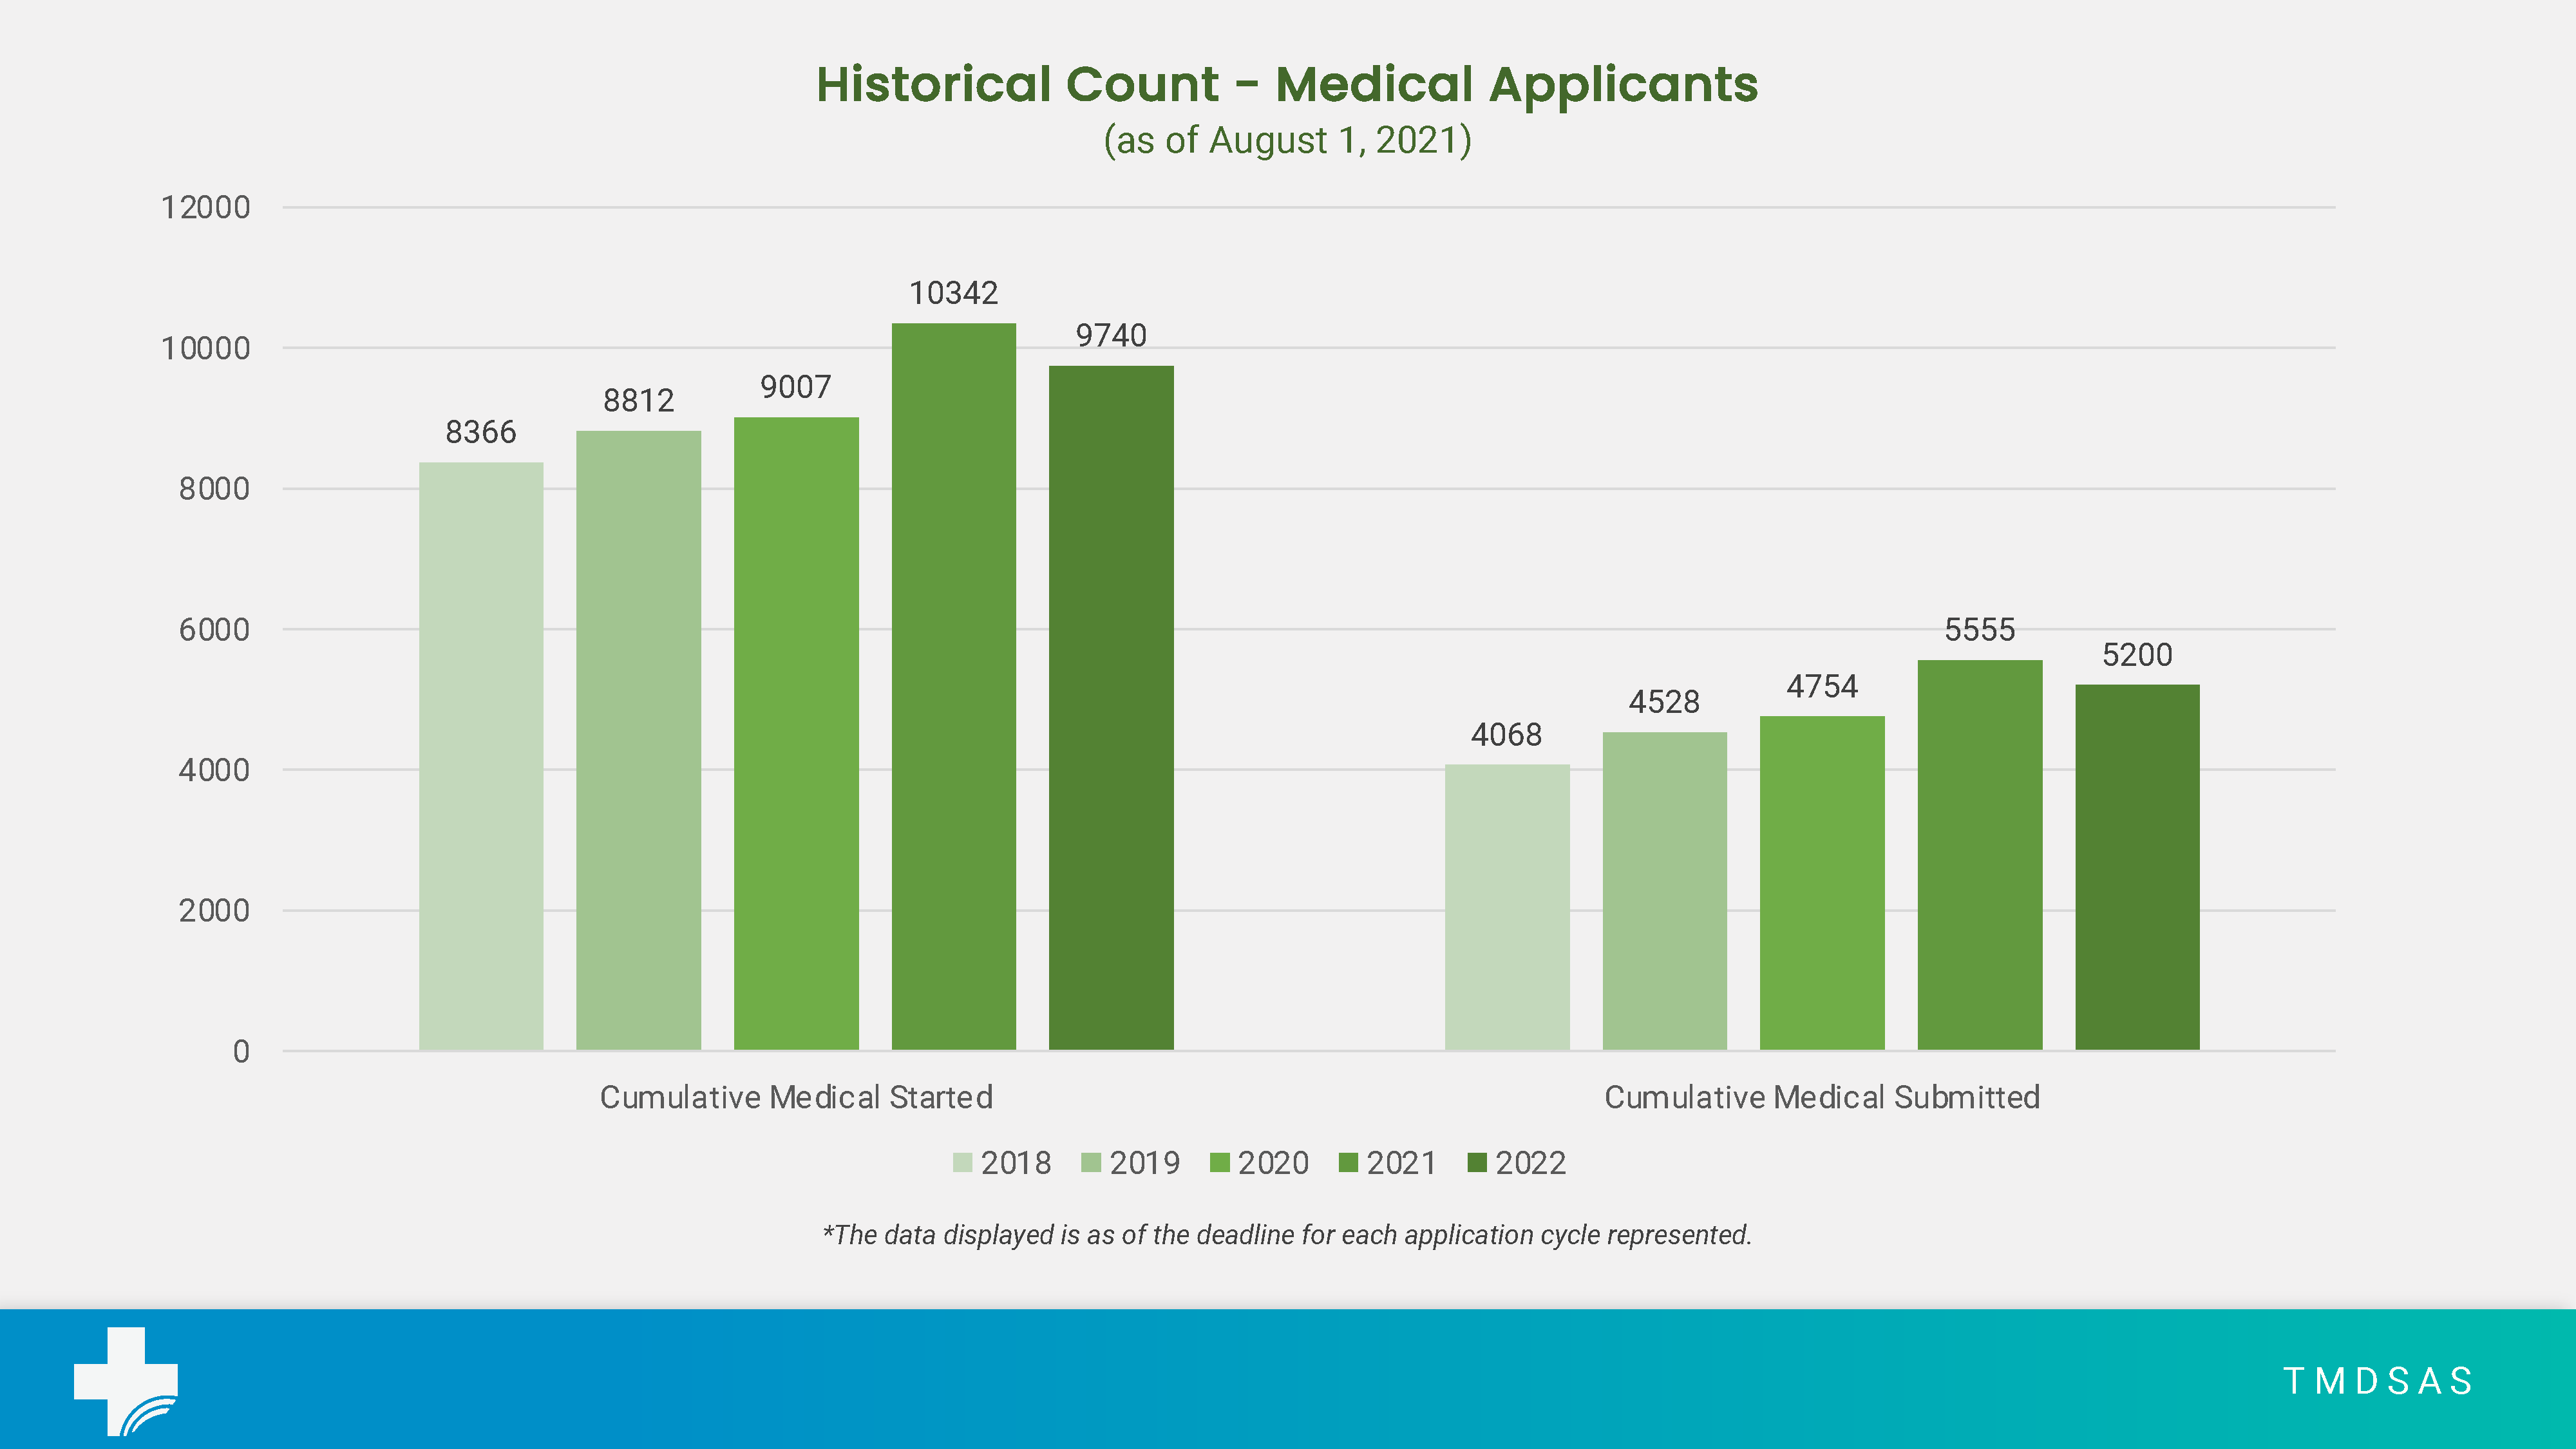 Total Medical Application Numbers for August 2021